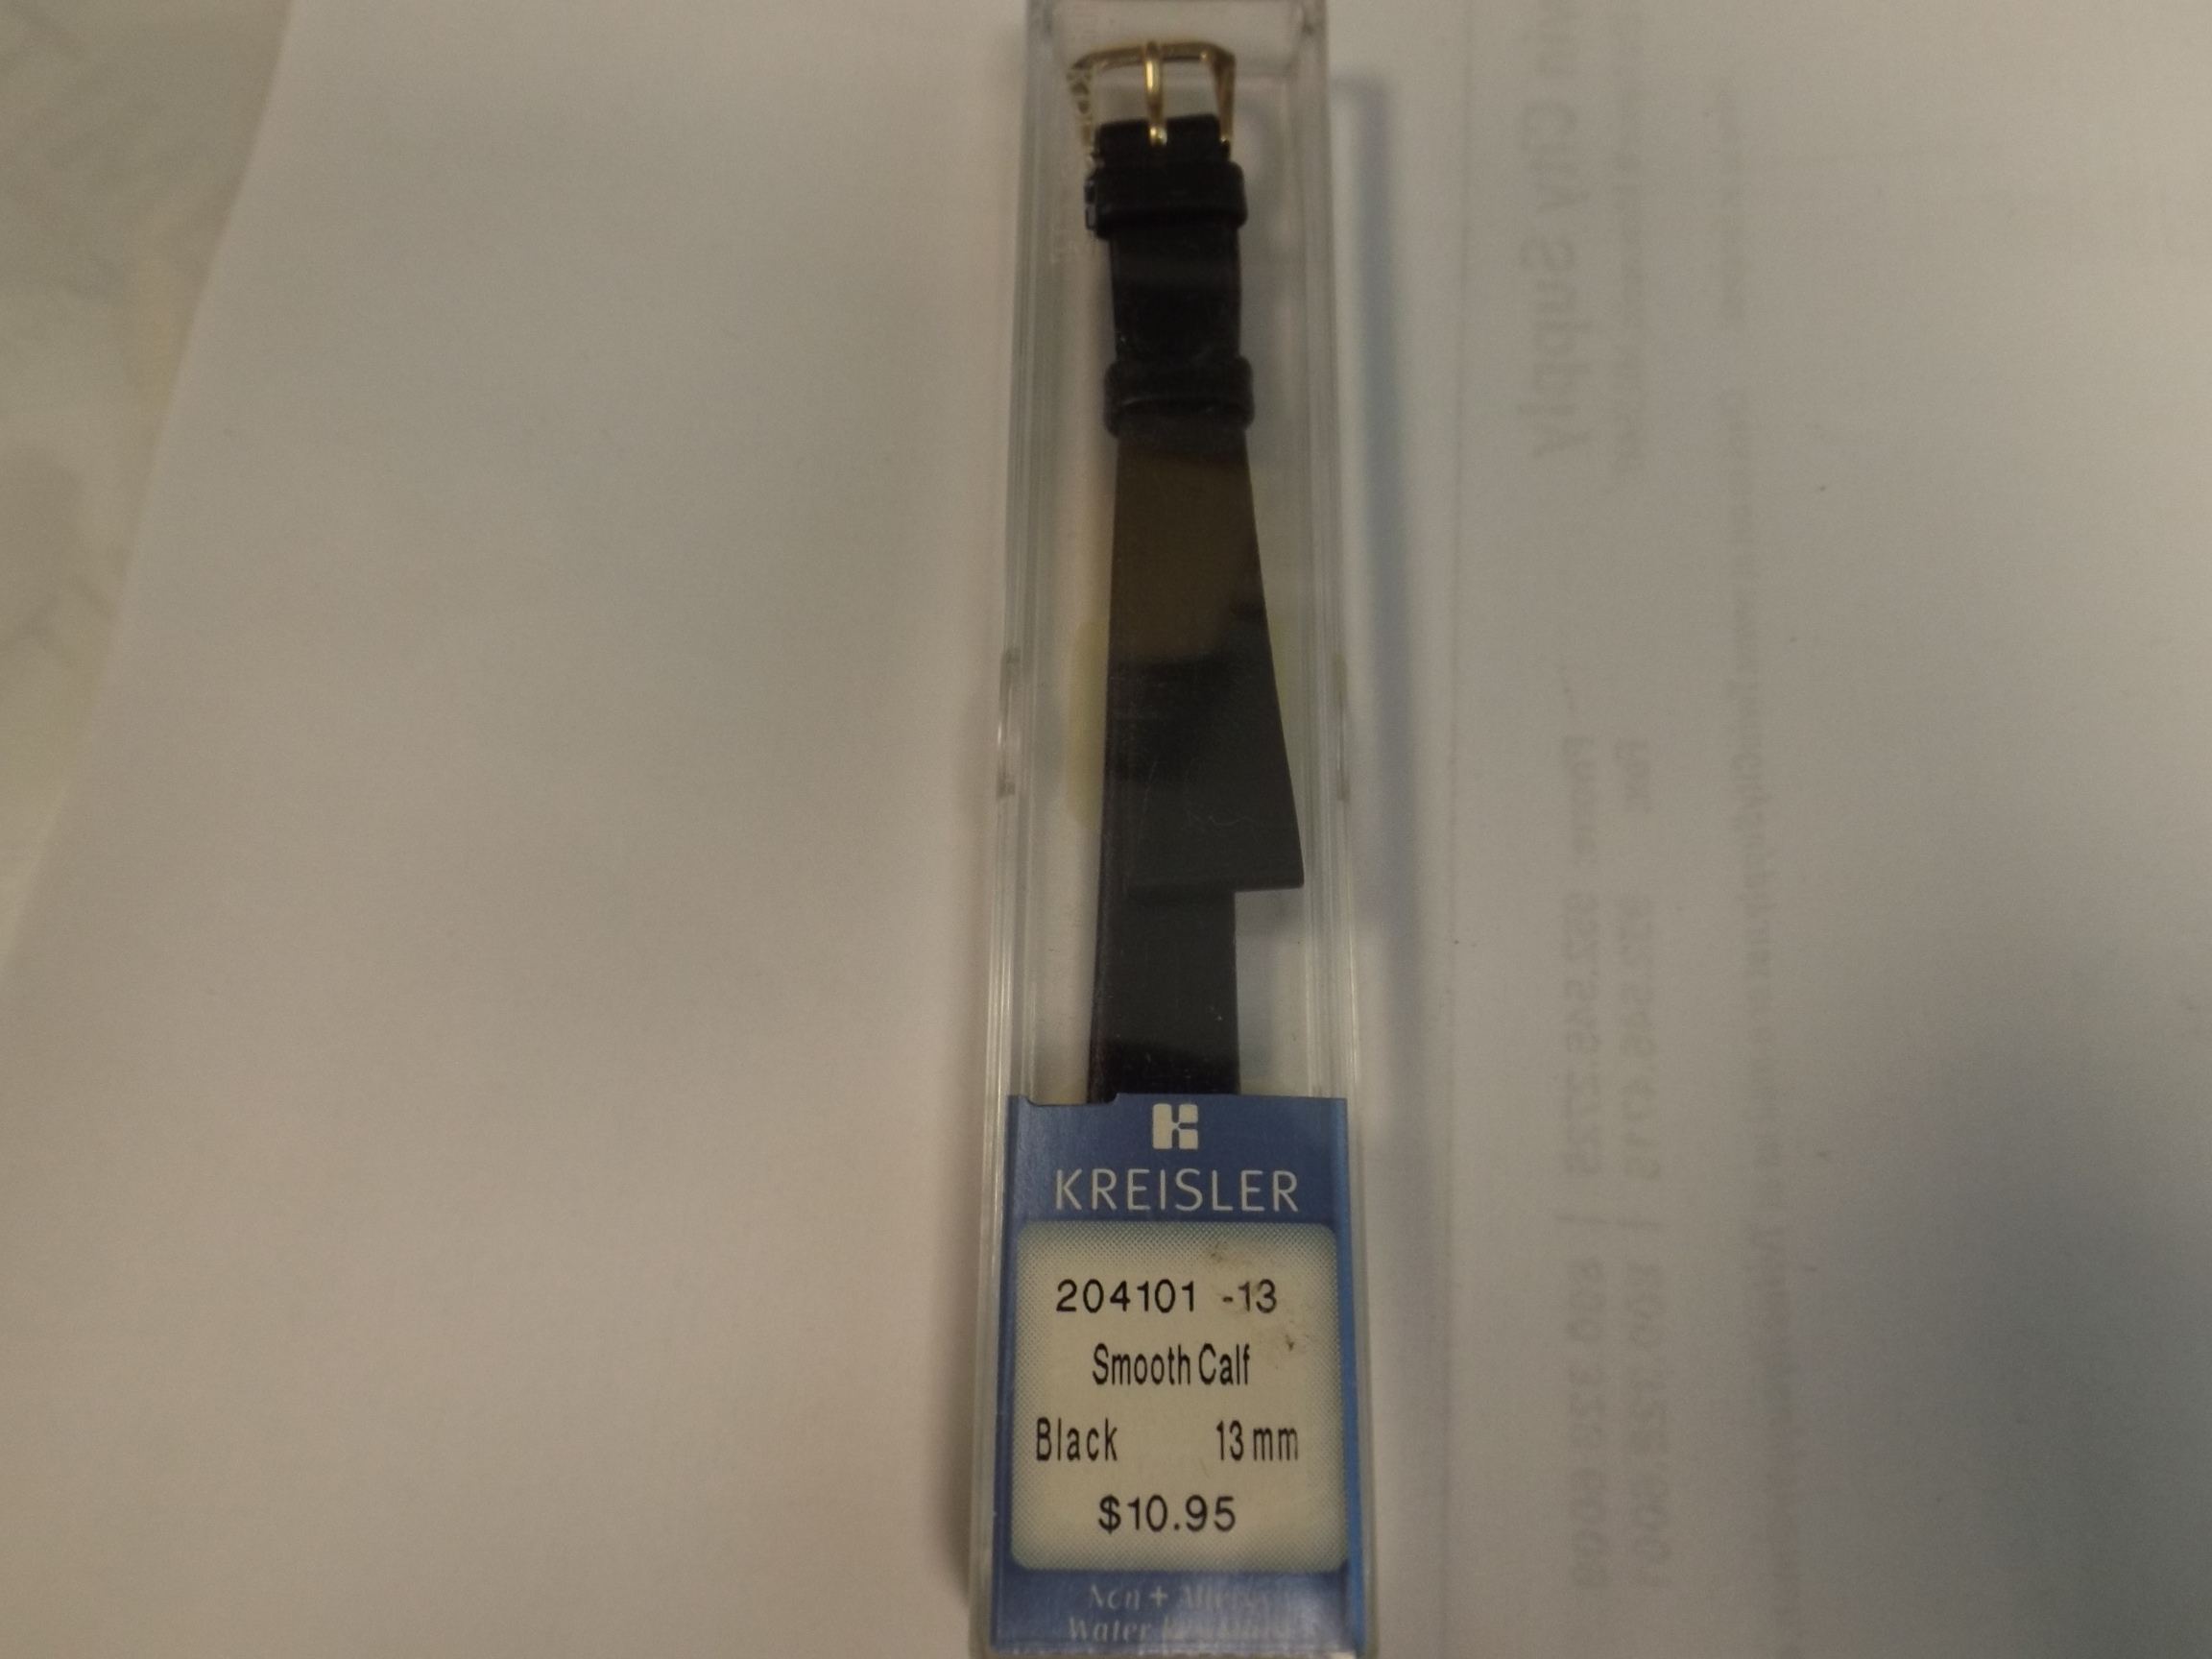 K204101-13MM Kreisler Watchband- Black Smooth Calf with Yellow Buckle-Closeout!